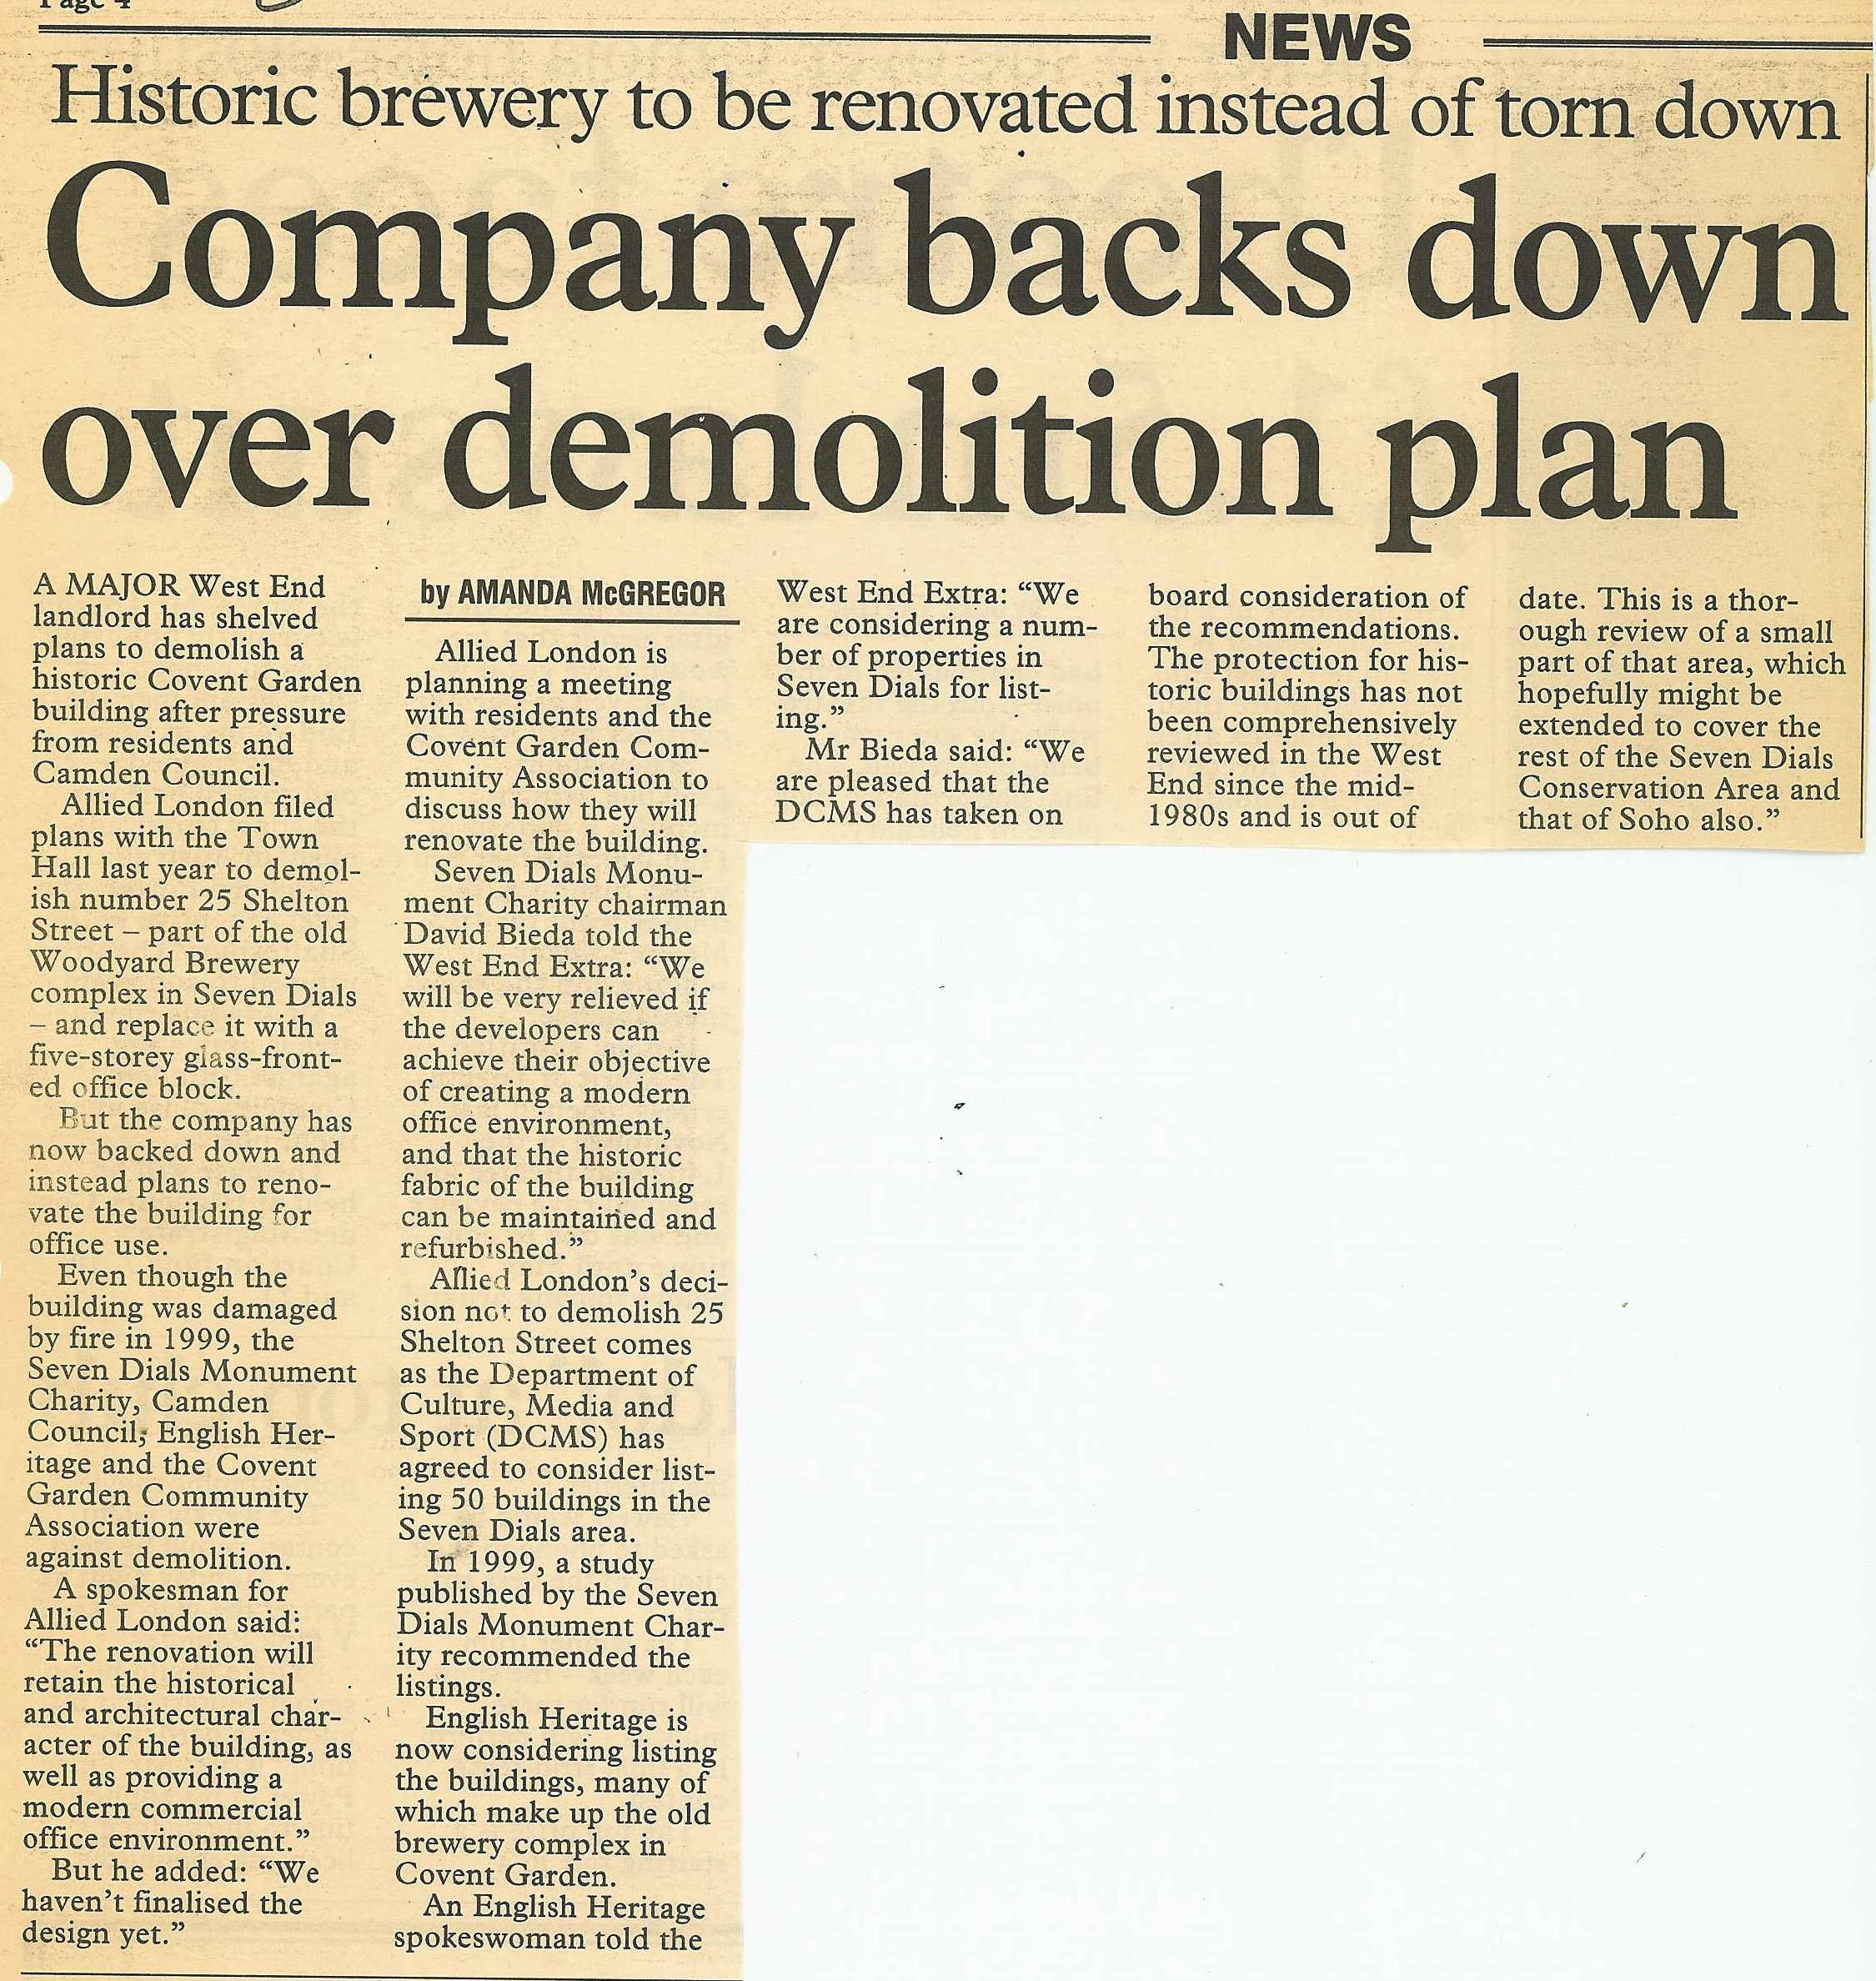 28 January 2002 – West End Extra: A major West End landlord has shelved plans to demolish a historic Covent Garden building.